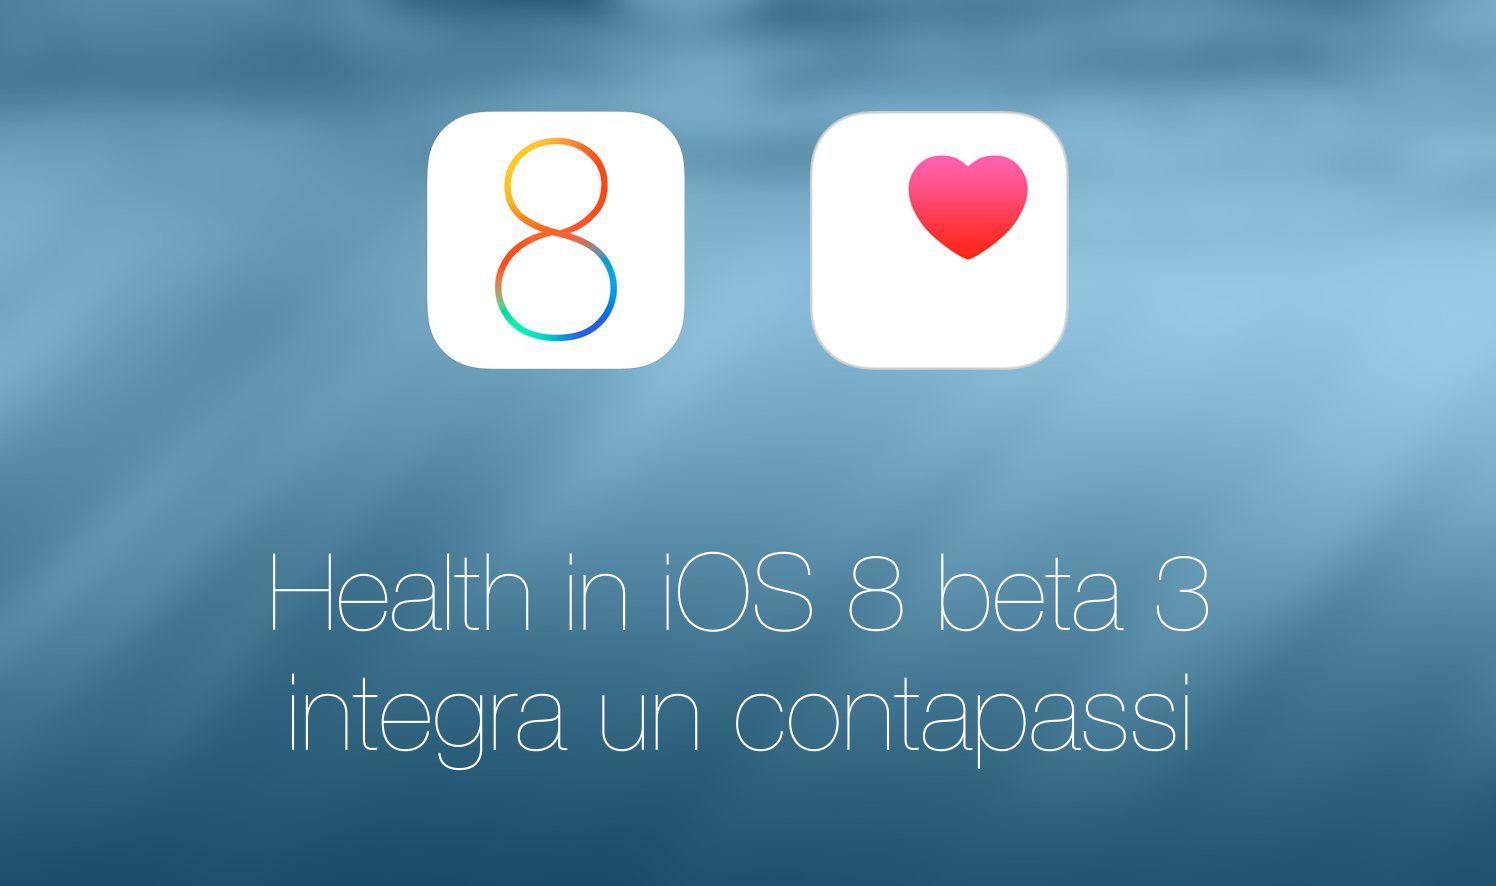 iOS 8 Health contapassi